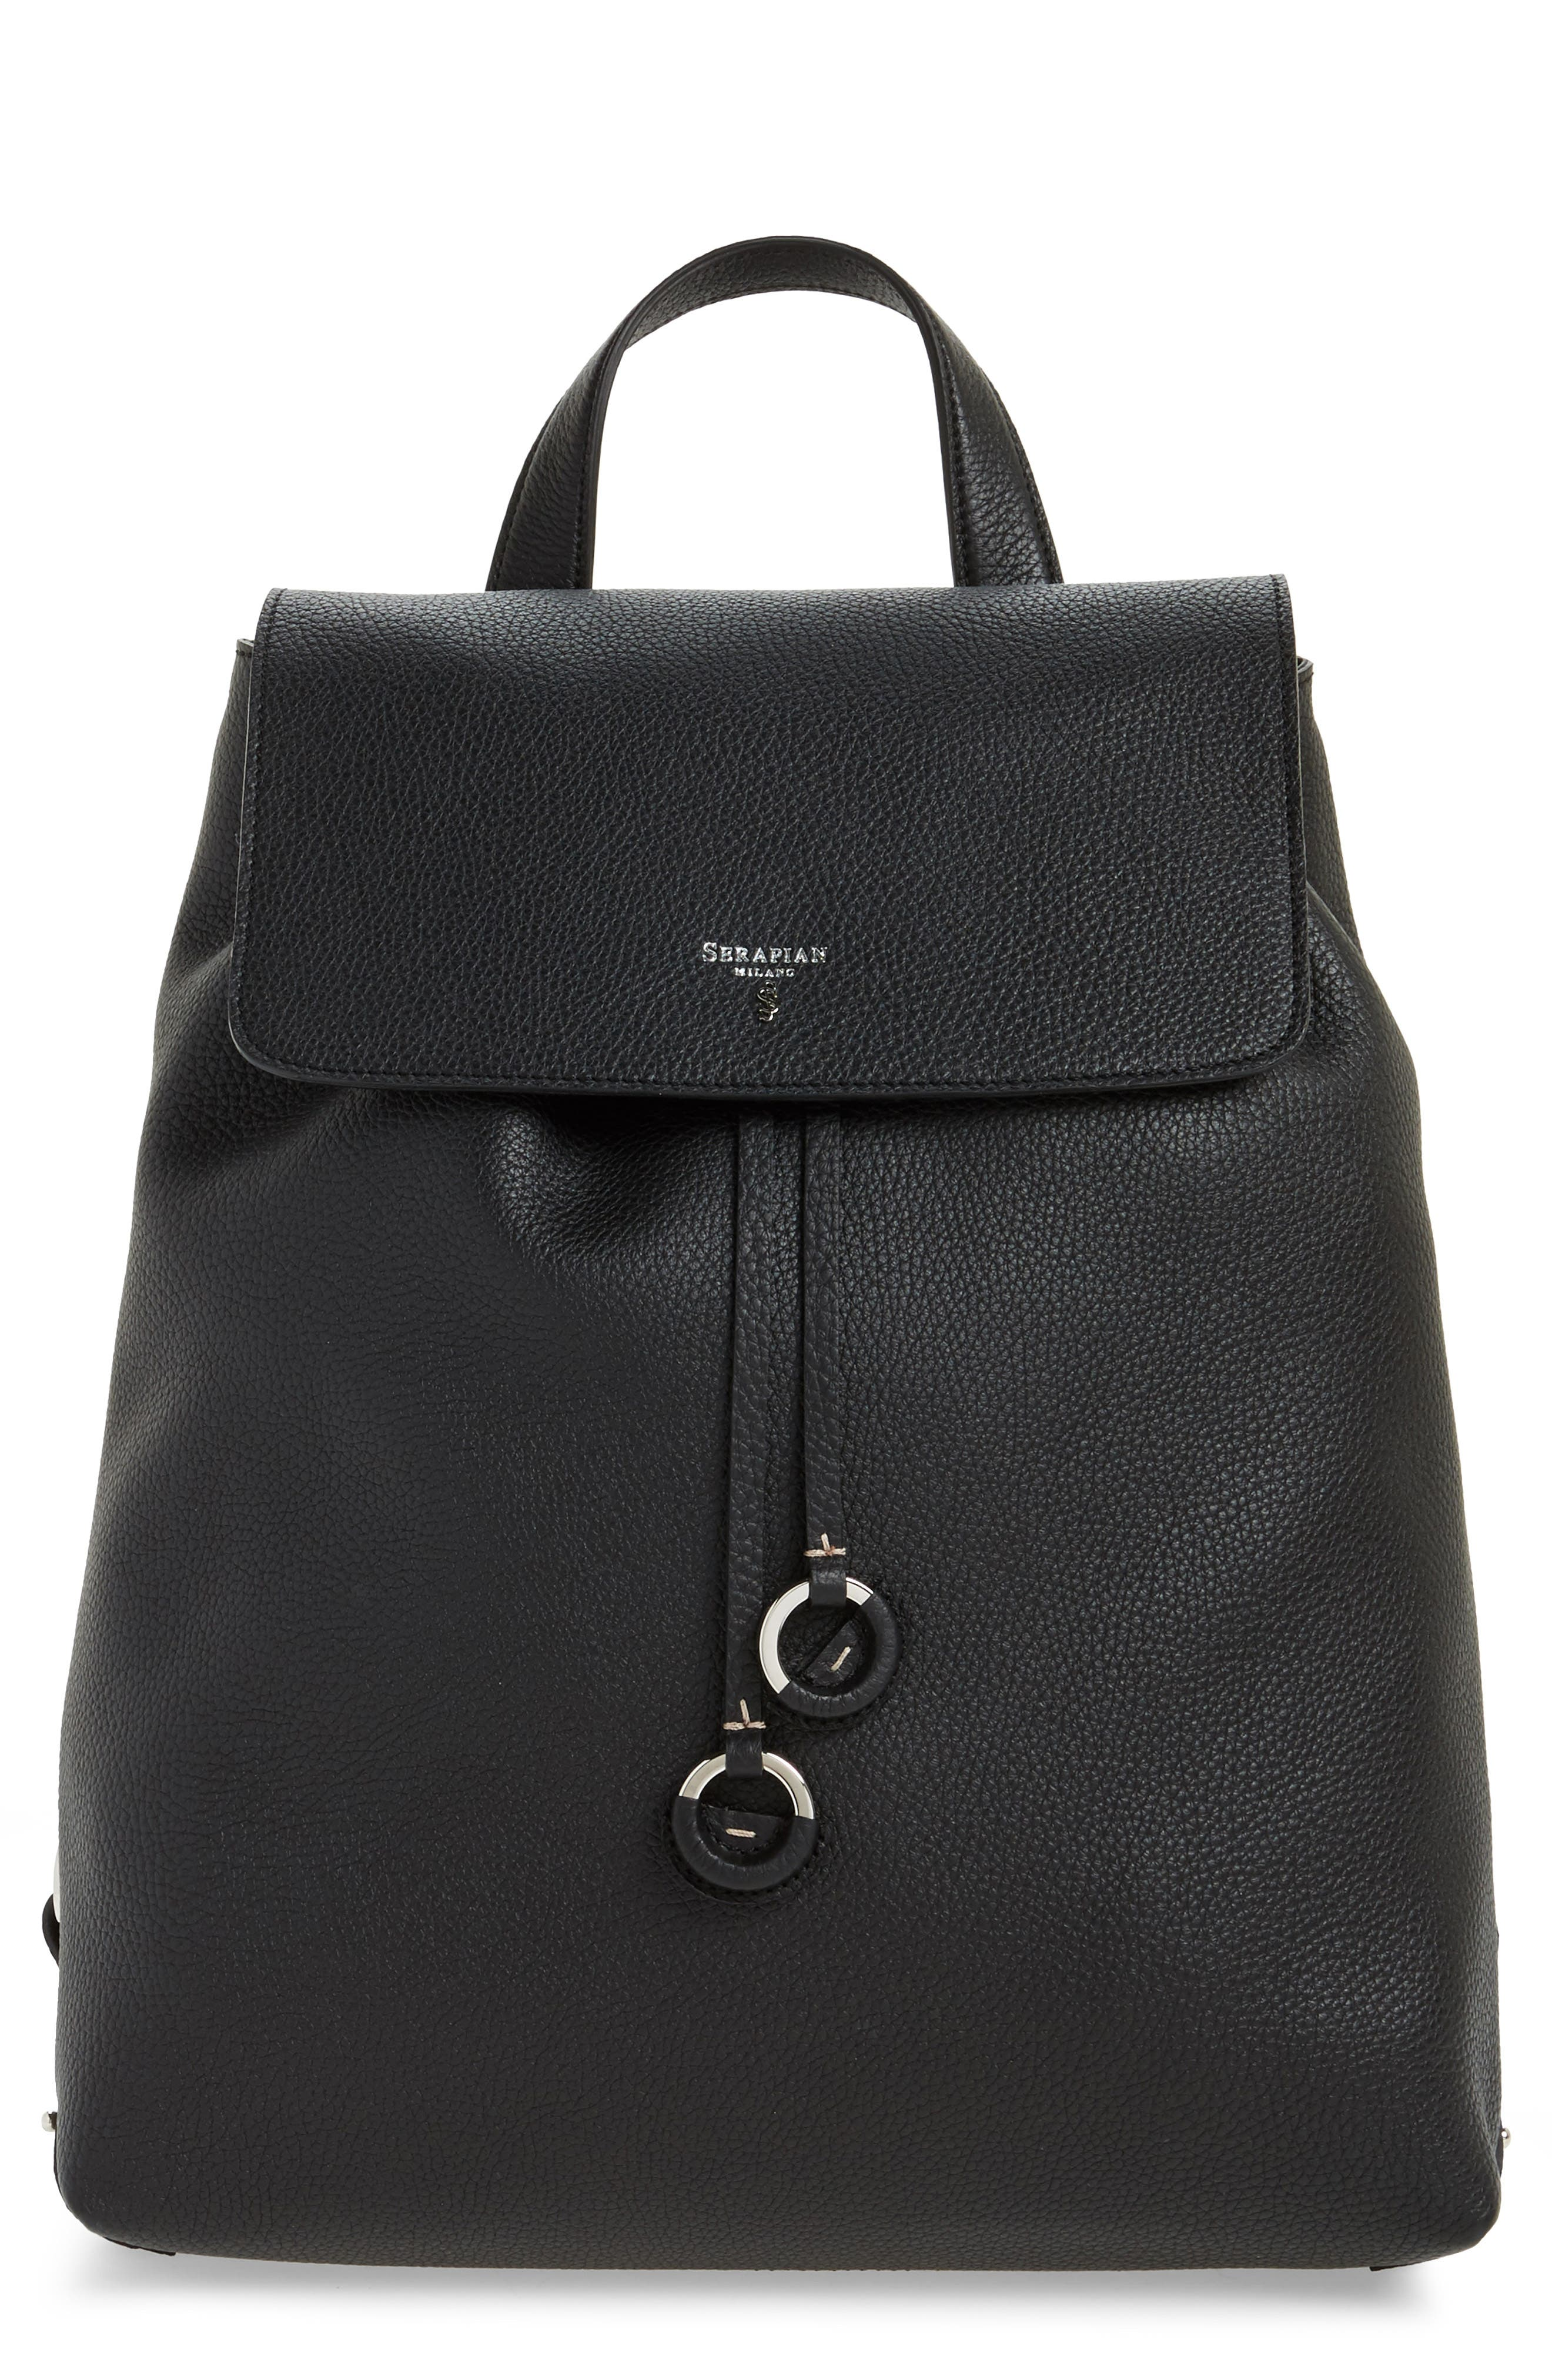 Carmen Cachemire Leather Backpack,                         Main,                         color, 001